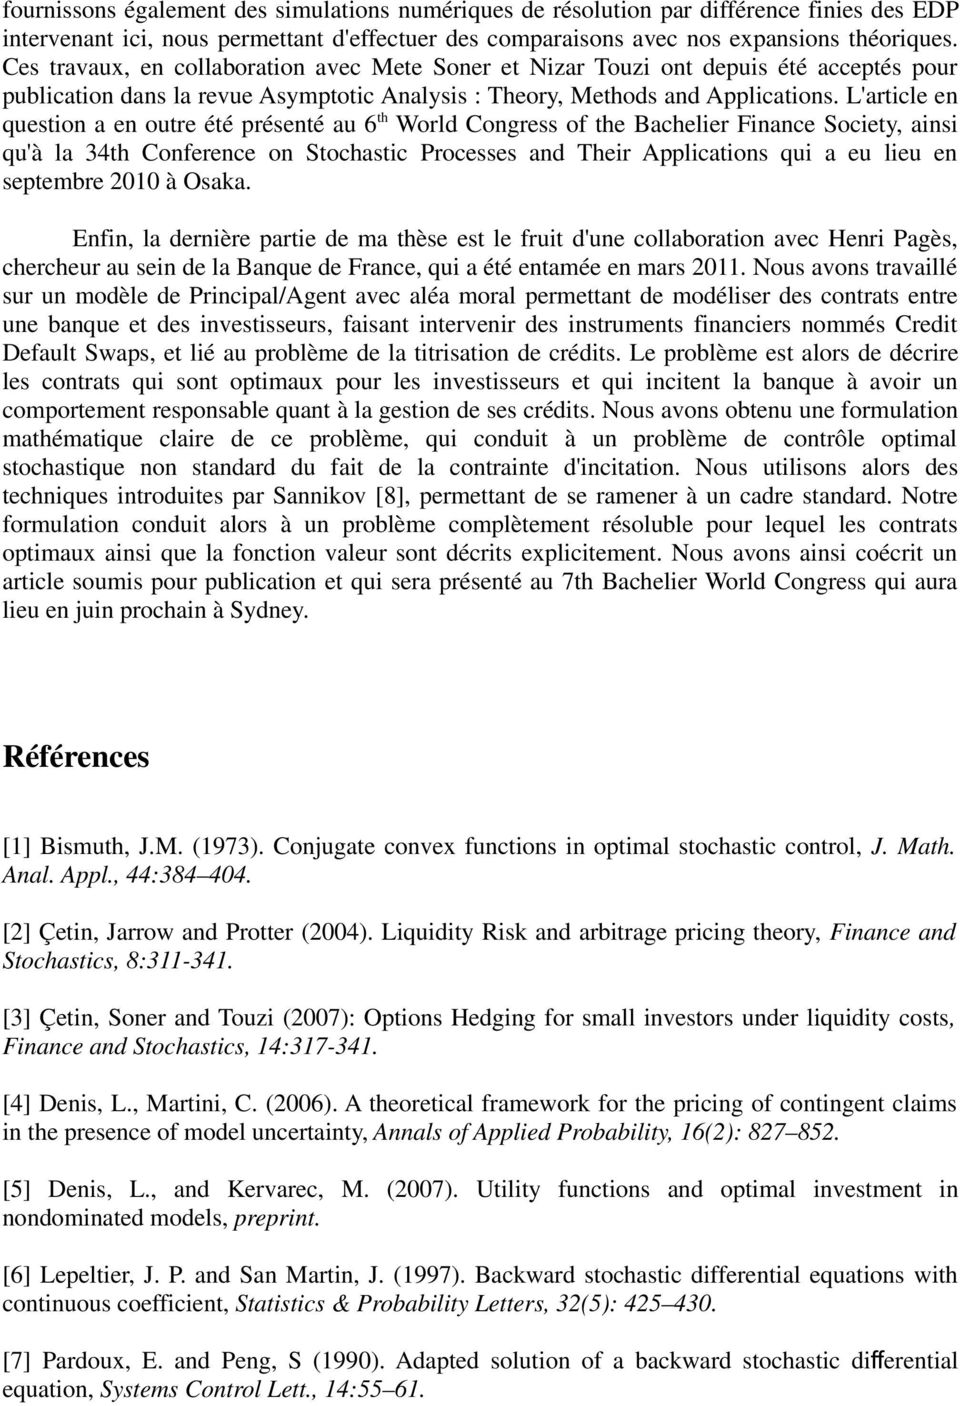 L'article en question a en outre été présenté au 6 th World Congress of the Bachelier Finance Society, ainsi qu'à la 34th Conference on Stochastic Processes and Their Applications qui a eu lieu en